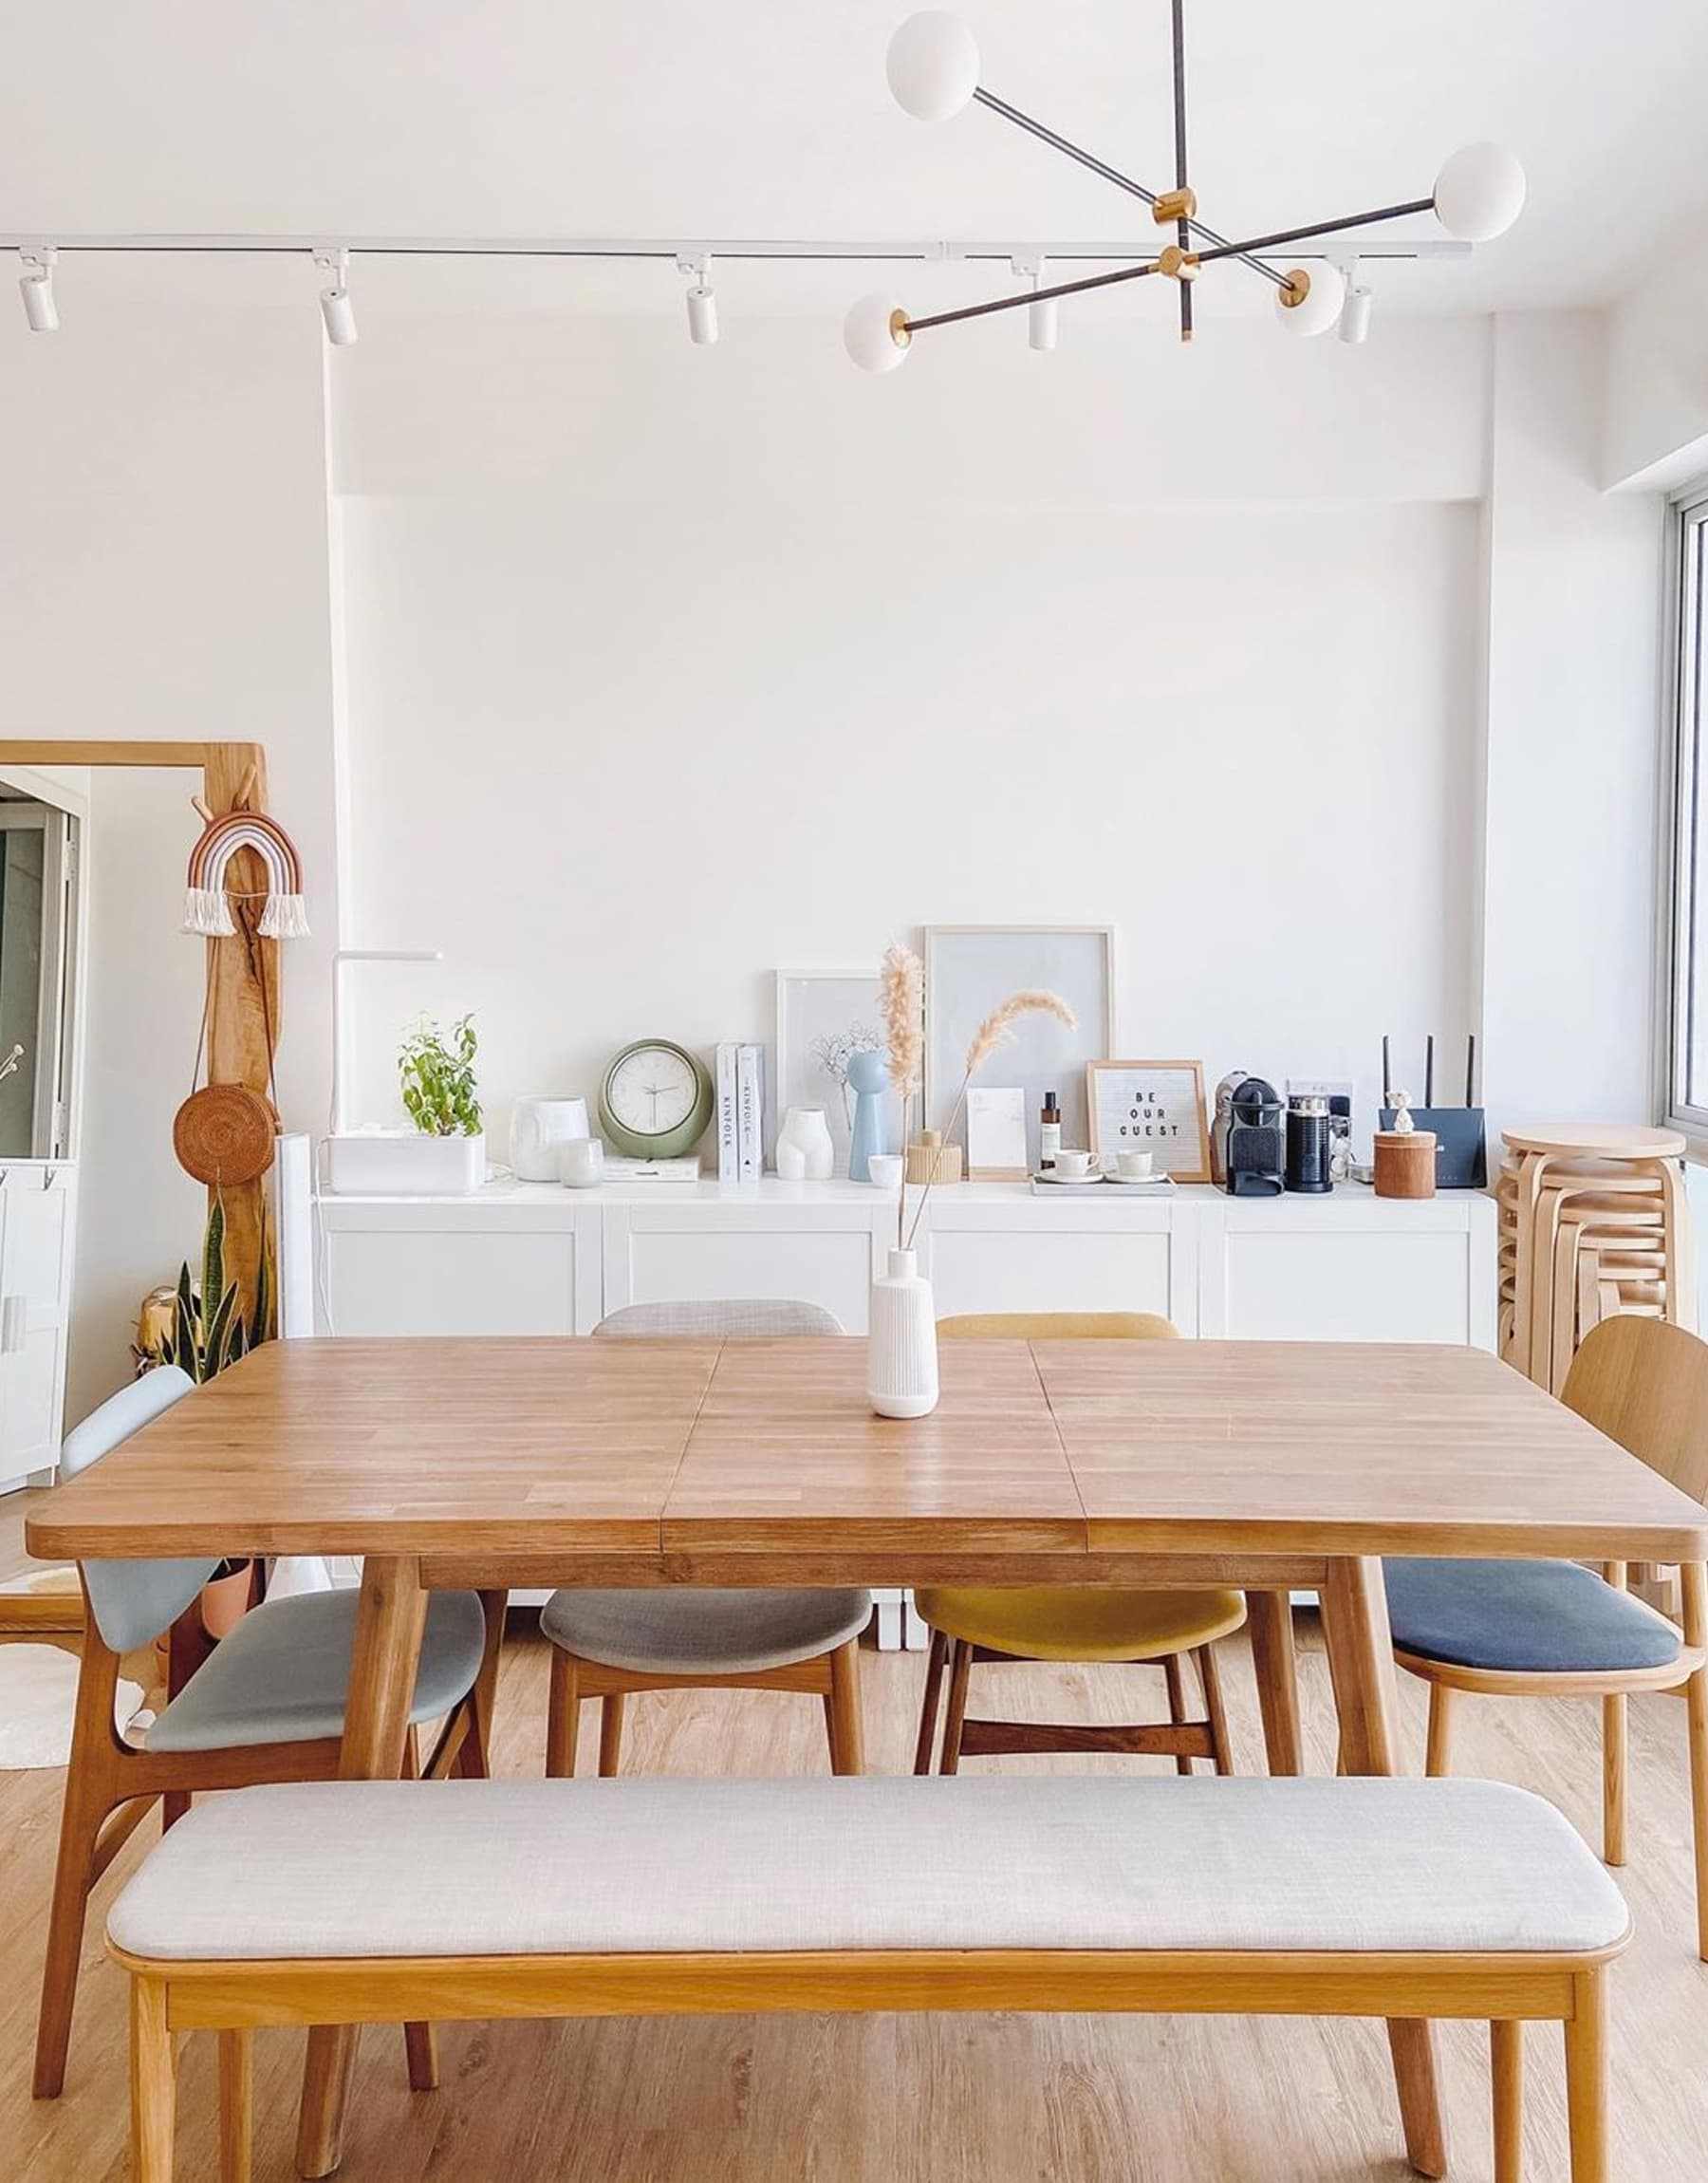 mismatched dining table and chairs in scandinavian dining space with sideboard